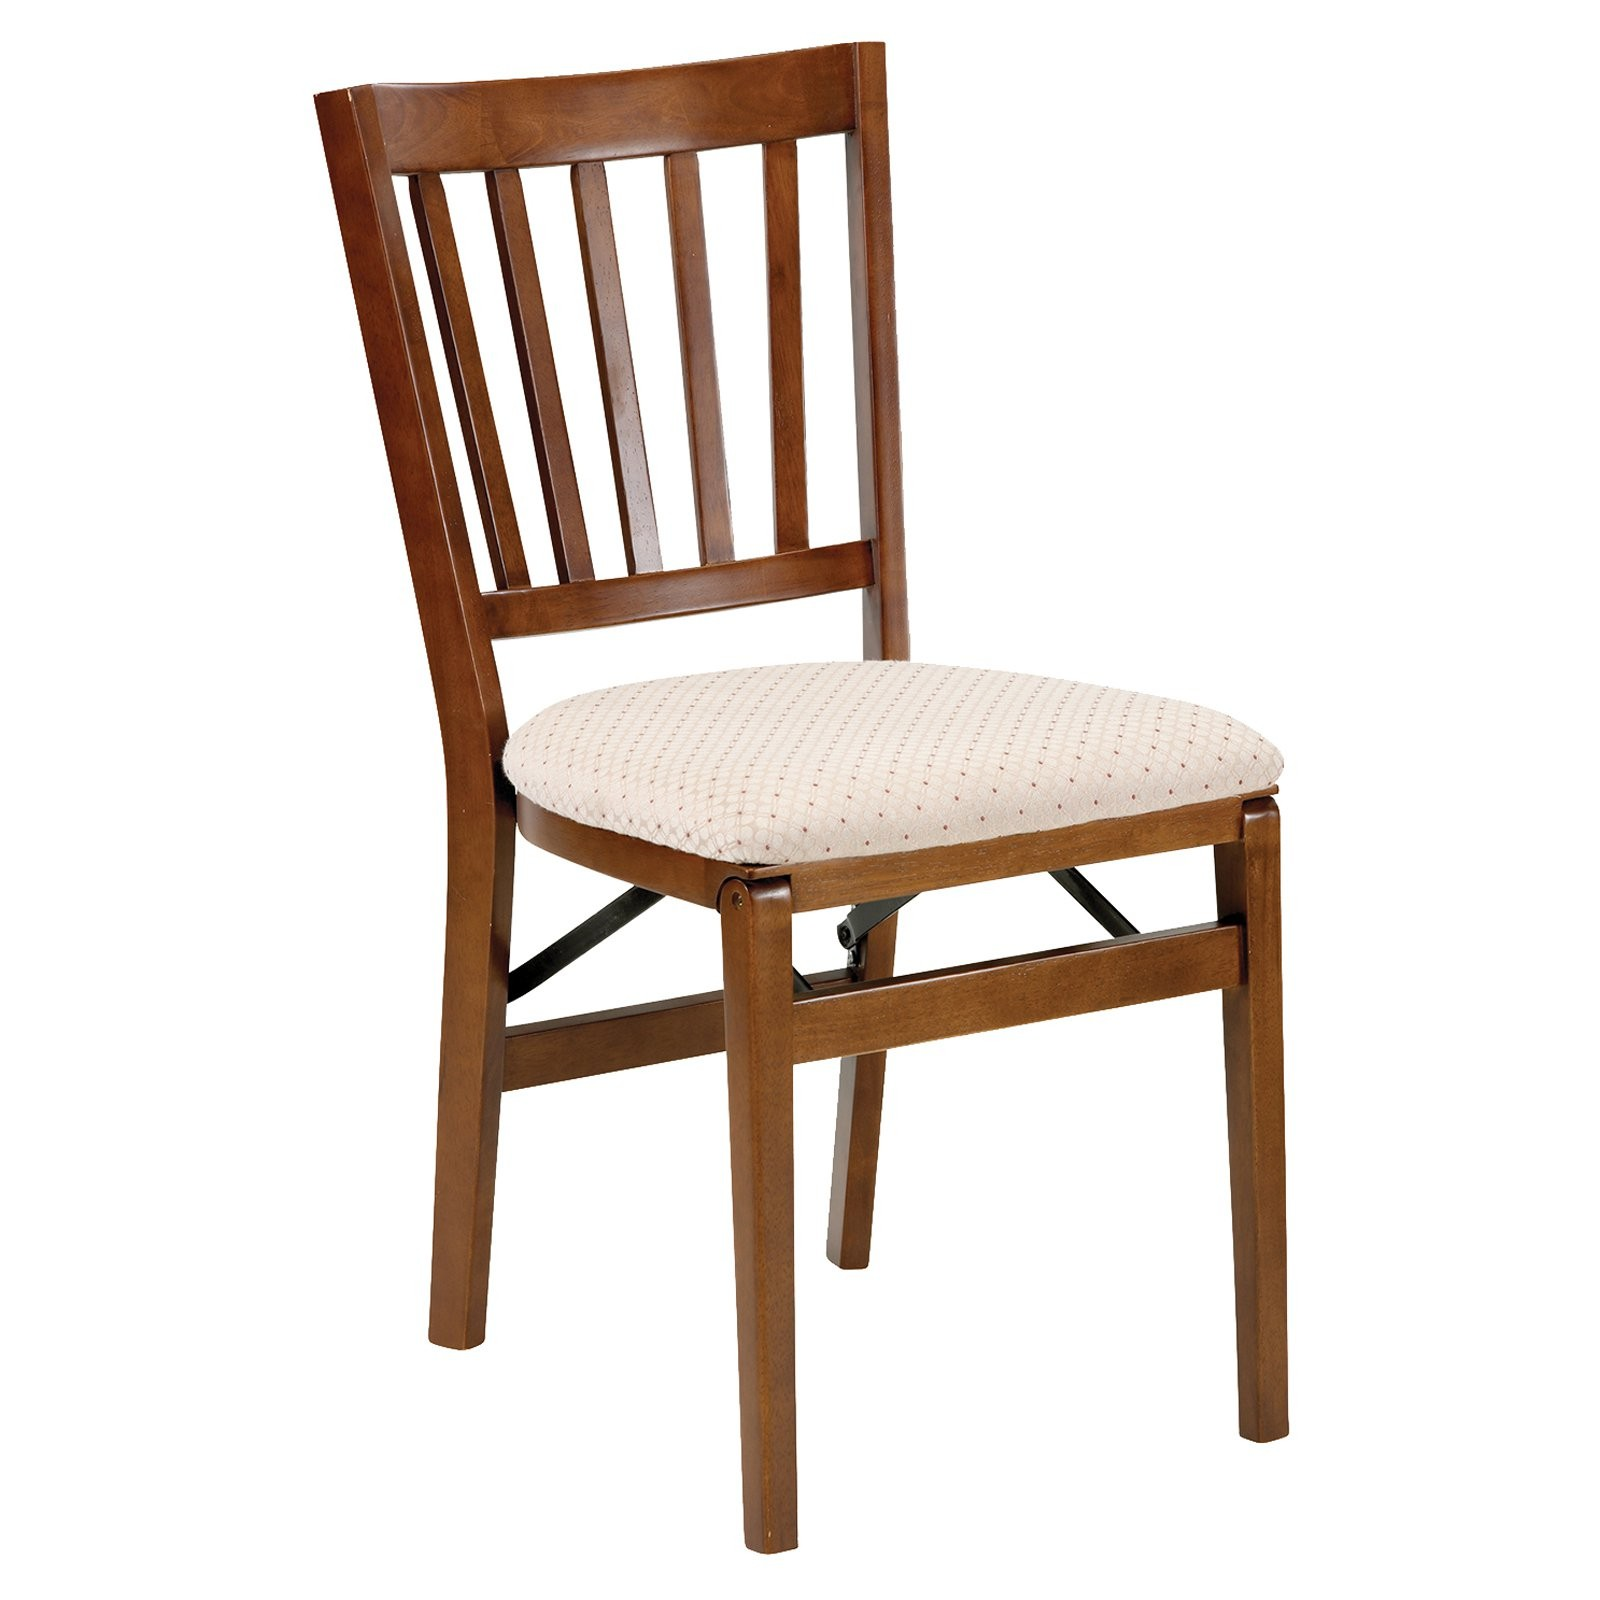 Schoolhouse Wood Folding Chair With Upholstered Seat (Set Of 2) Finish:  Fruitwood